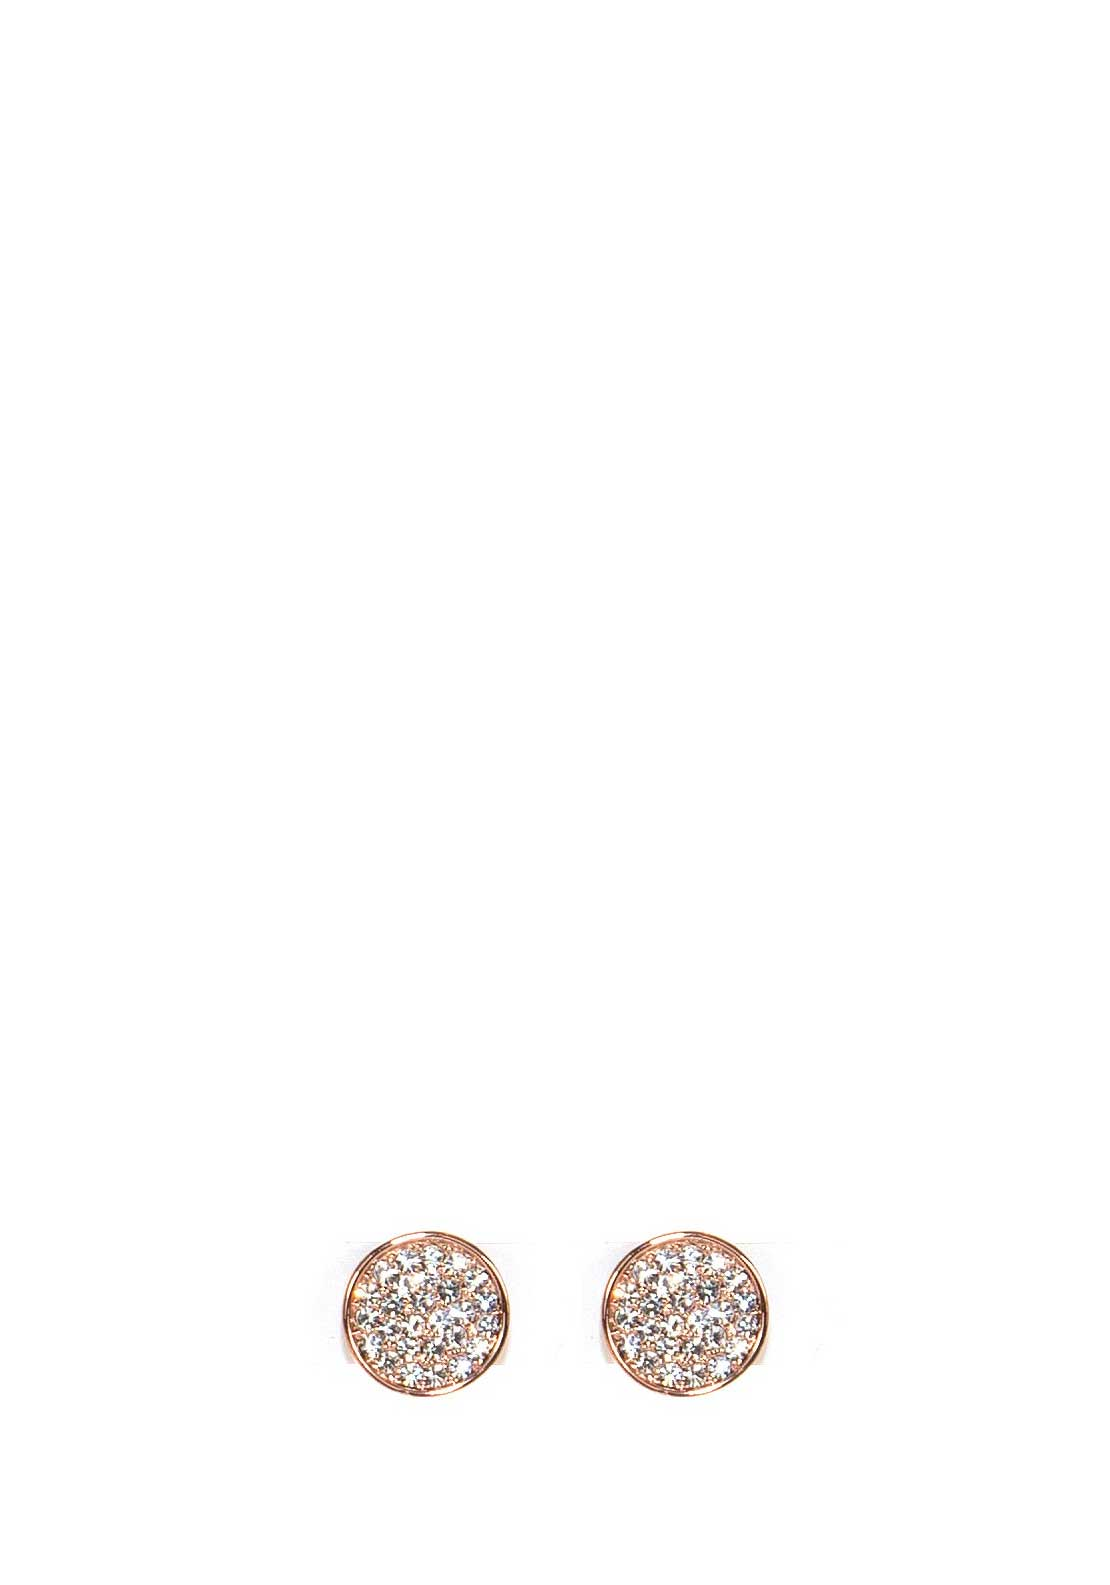 Absolute Jewellery Crystal Studded Disc Earrings, Rose Gold